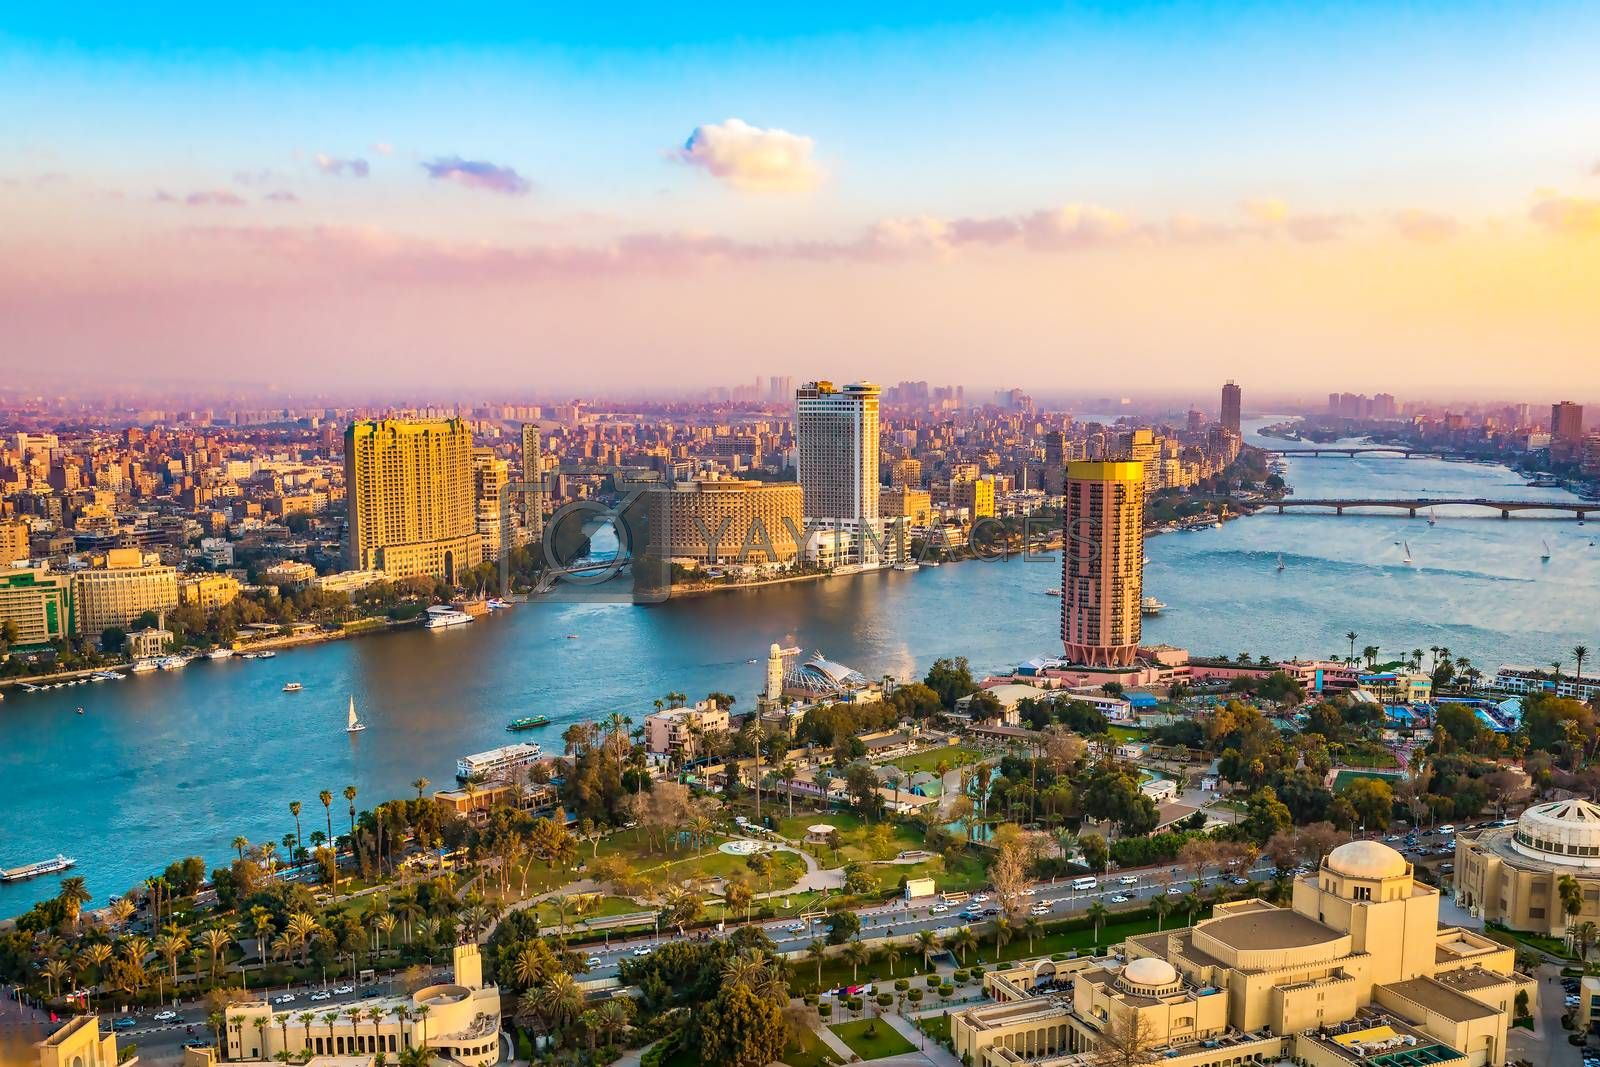 Panorama of Cairo cityscape taken during the sunset from the famous Cairo tower, Cairo, Egypt